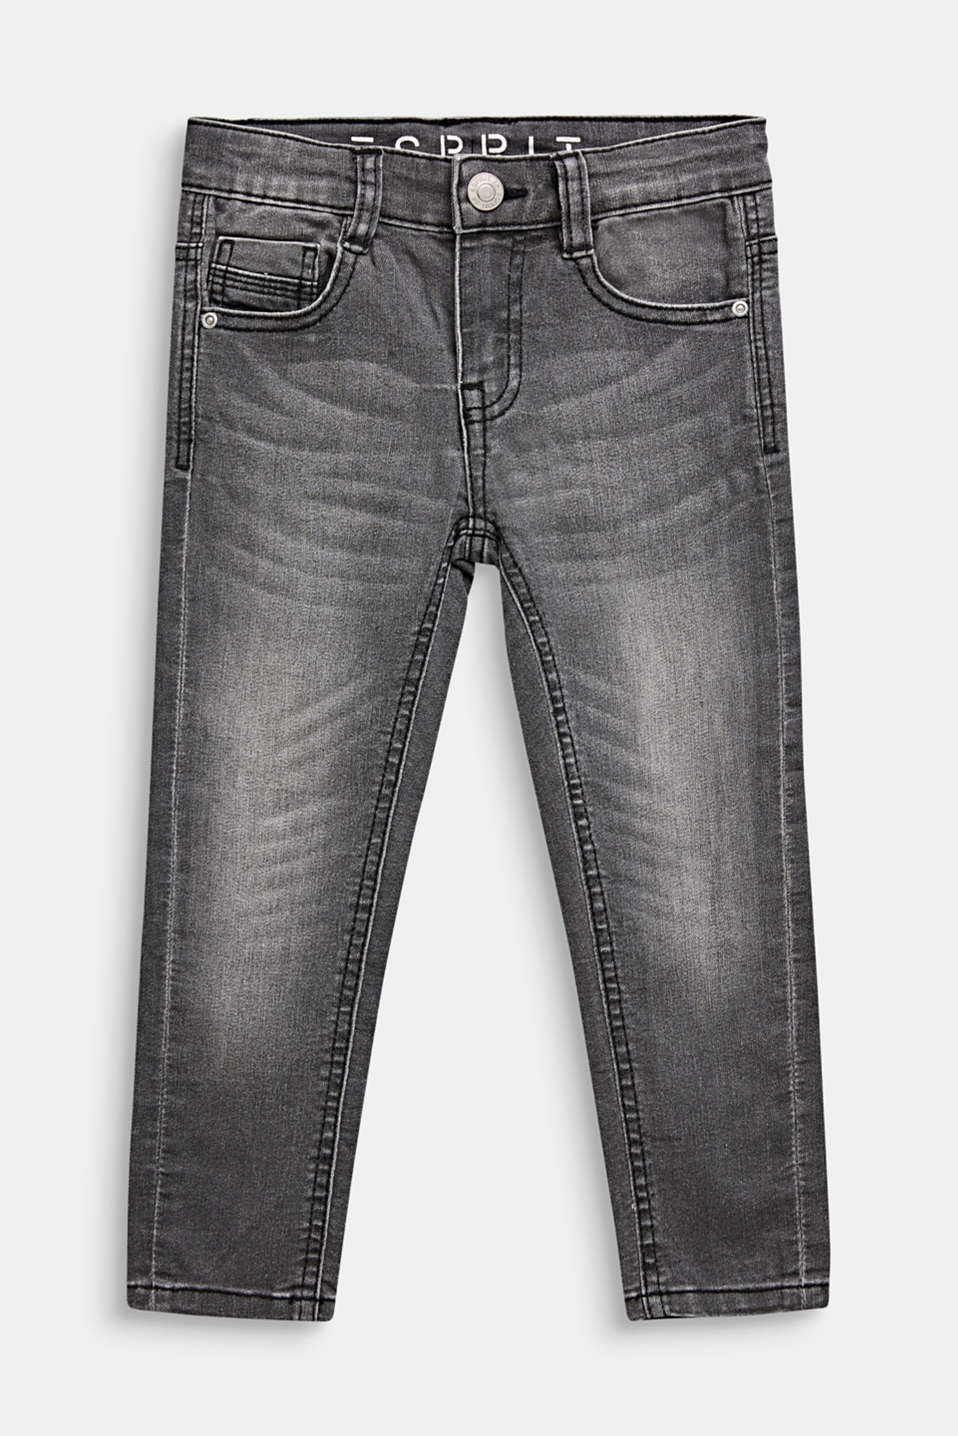 Esprit - Grijze stretchjeans met garment-washed look